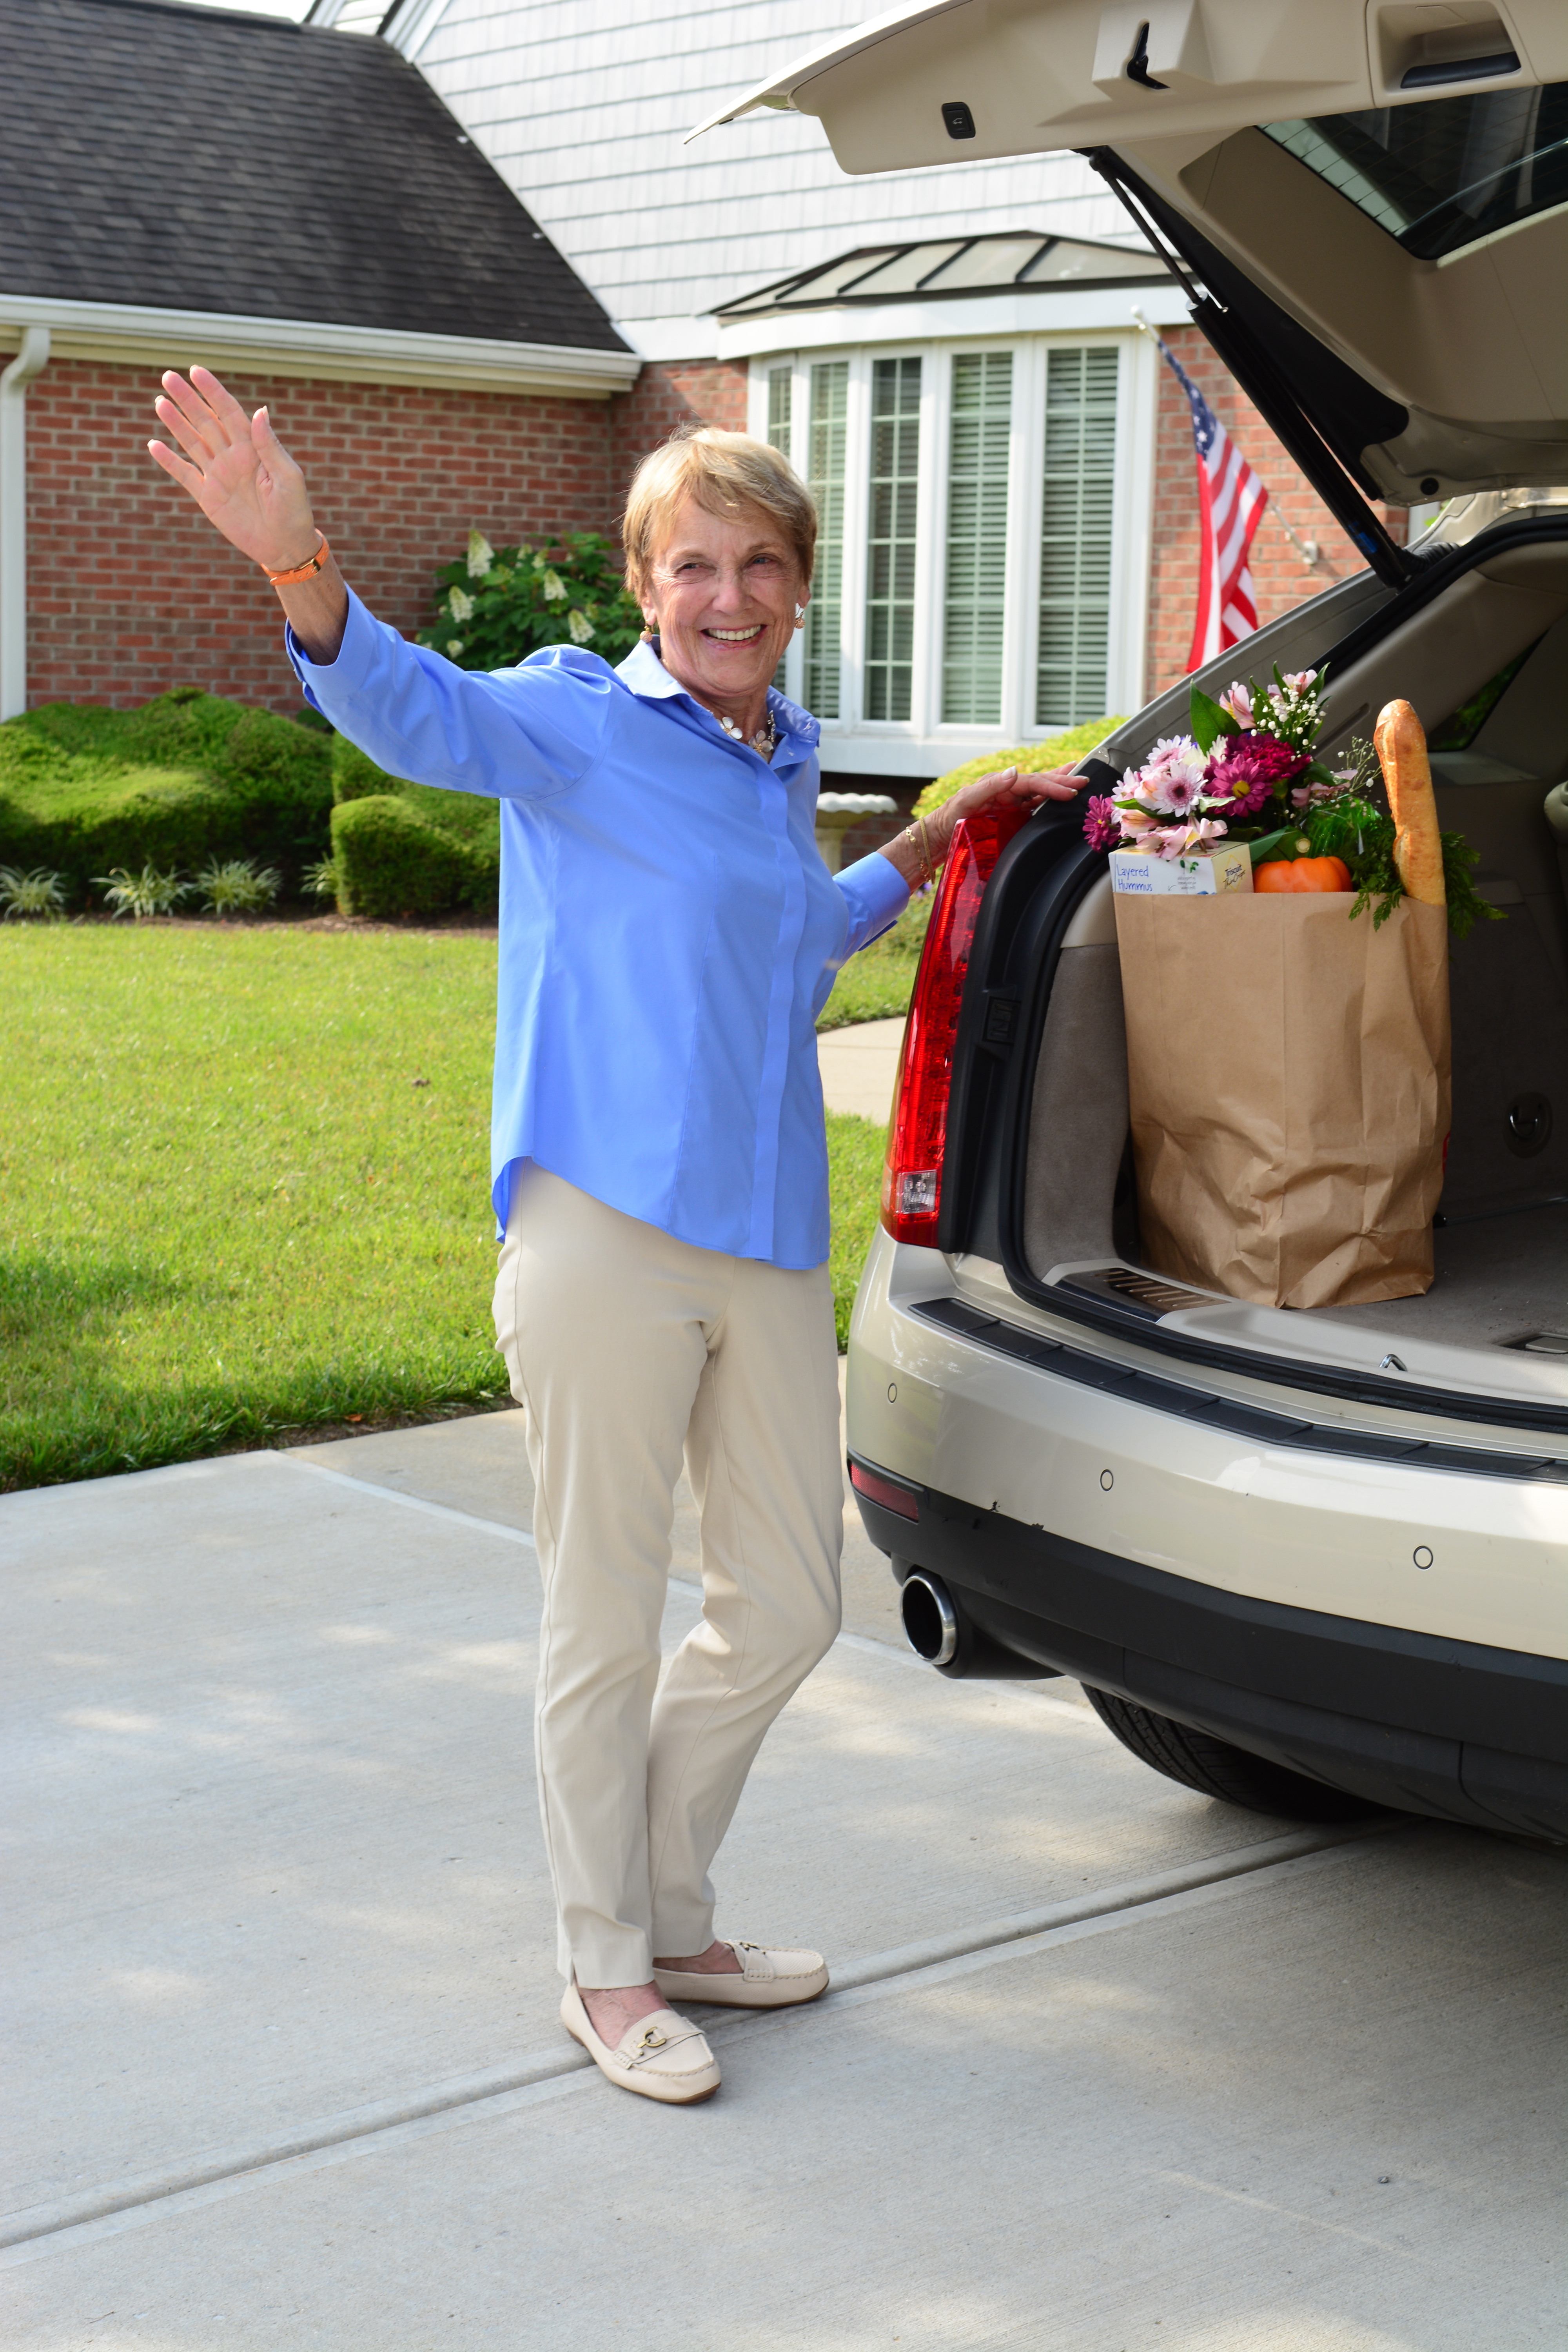 woman in driveway waving with grocery bag in arms